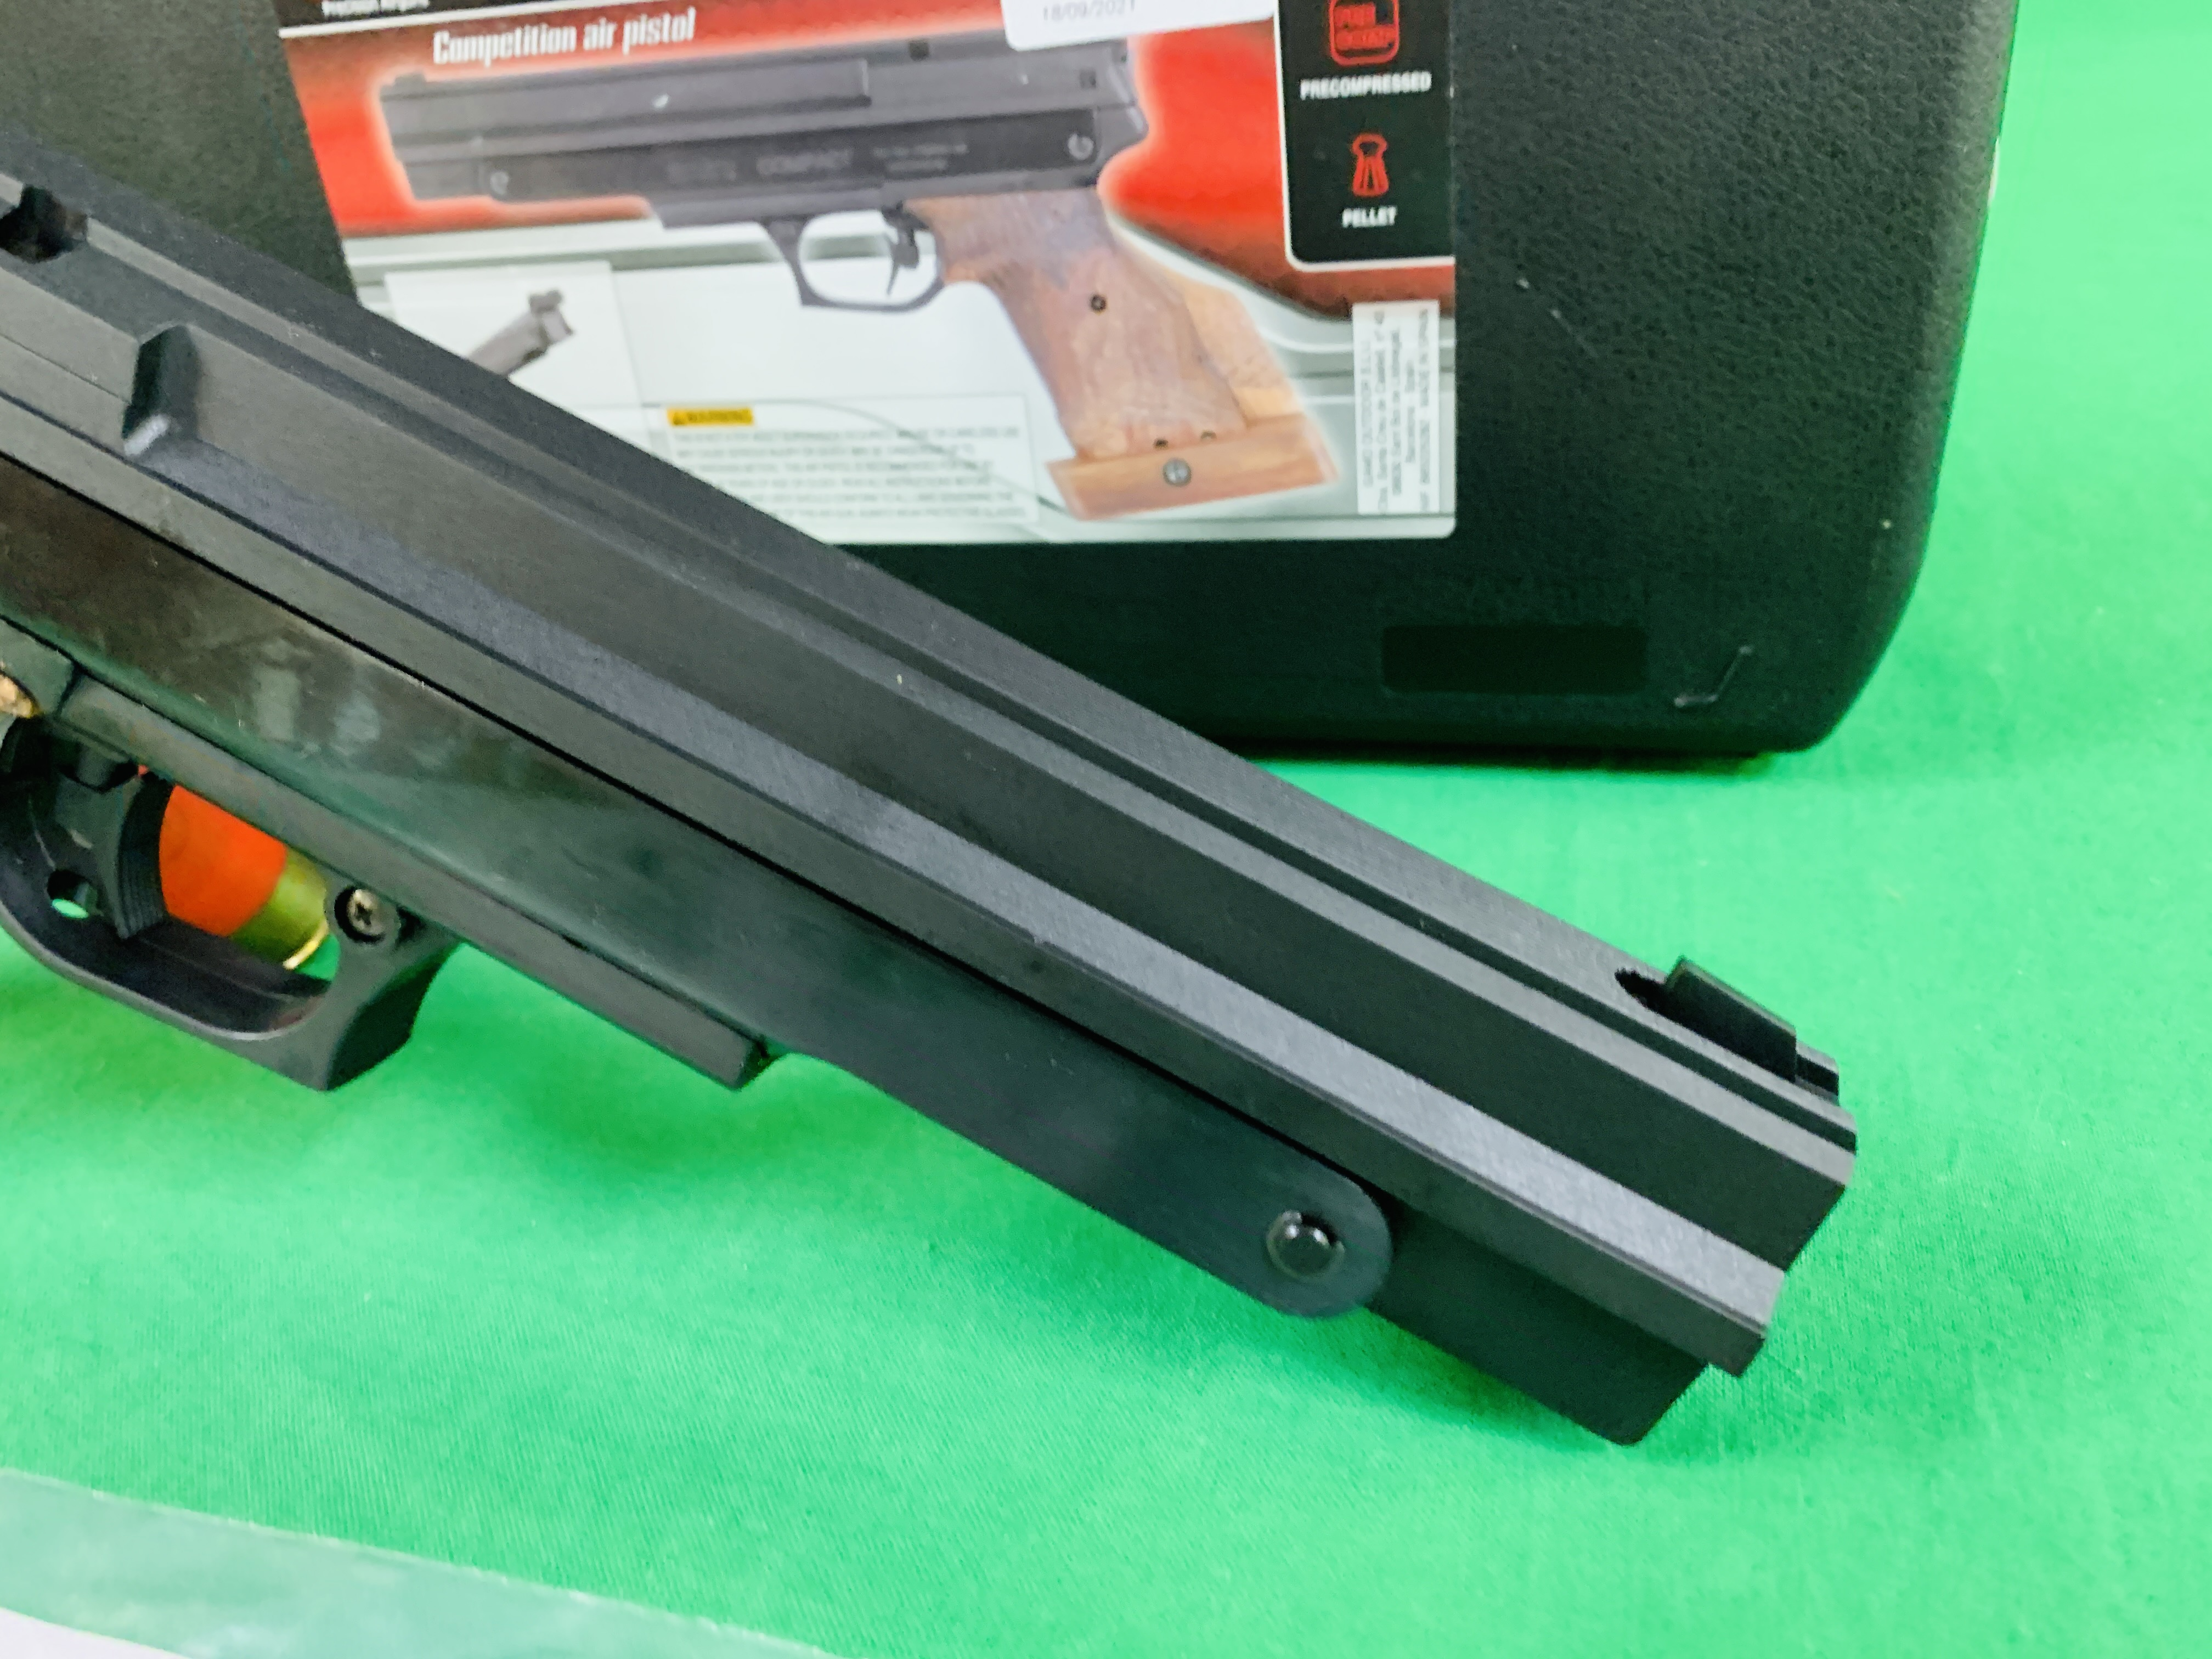 A GAMO COMPACT PRECOMRESSED COMPETITION . - Image 6 of 8